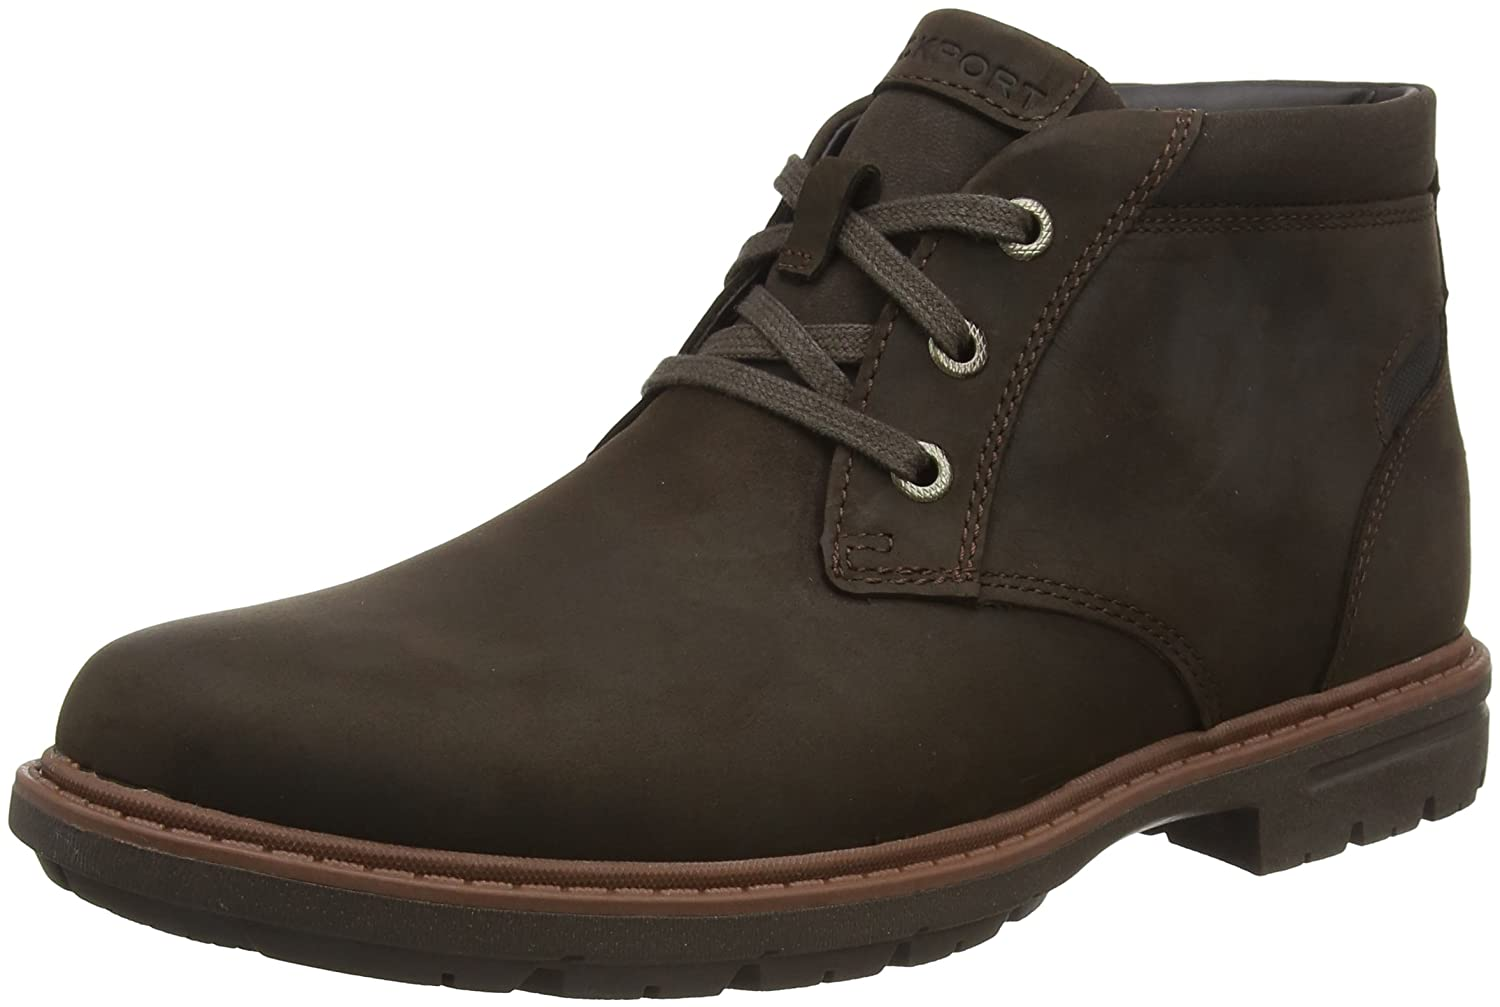 Rockport Tough Bucks Chukka, Botas Hombre